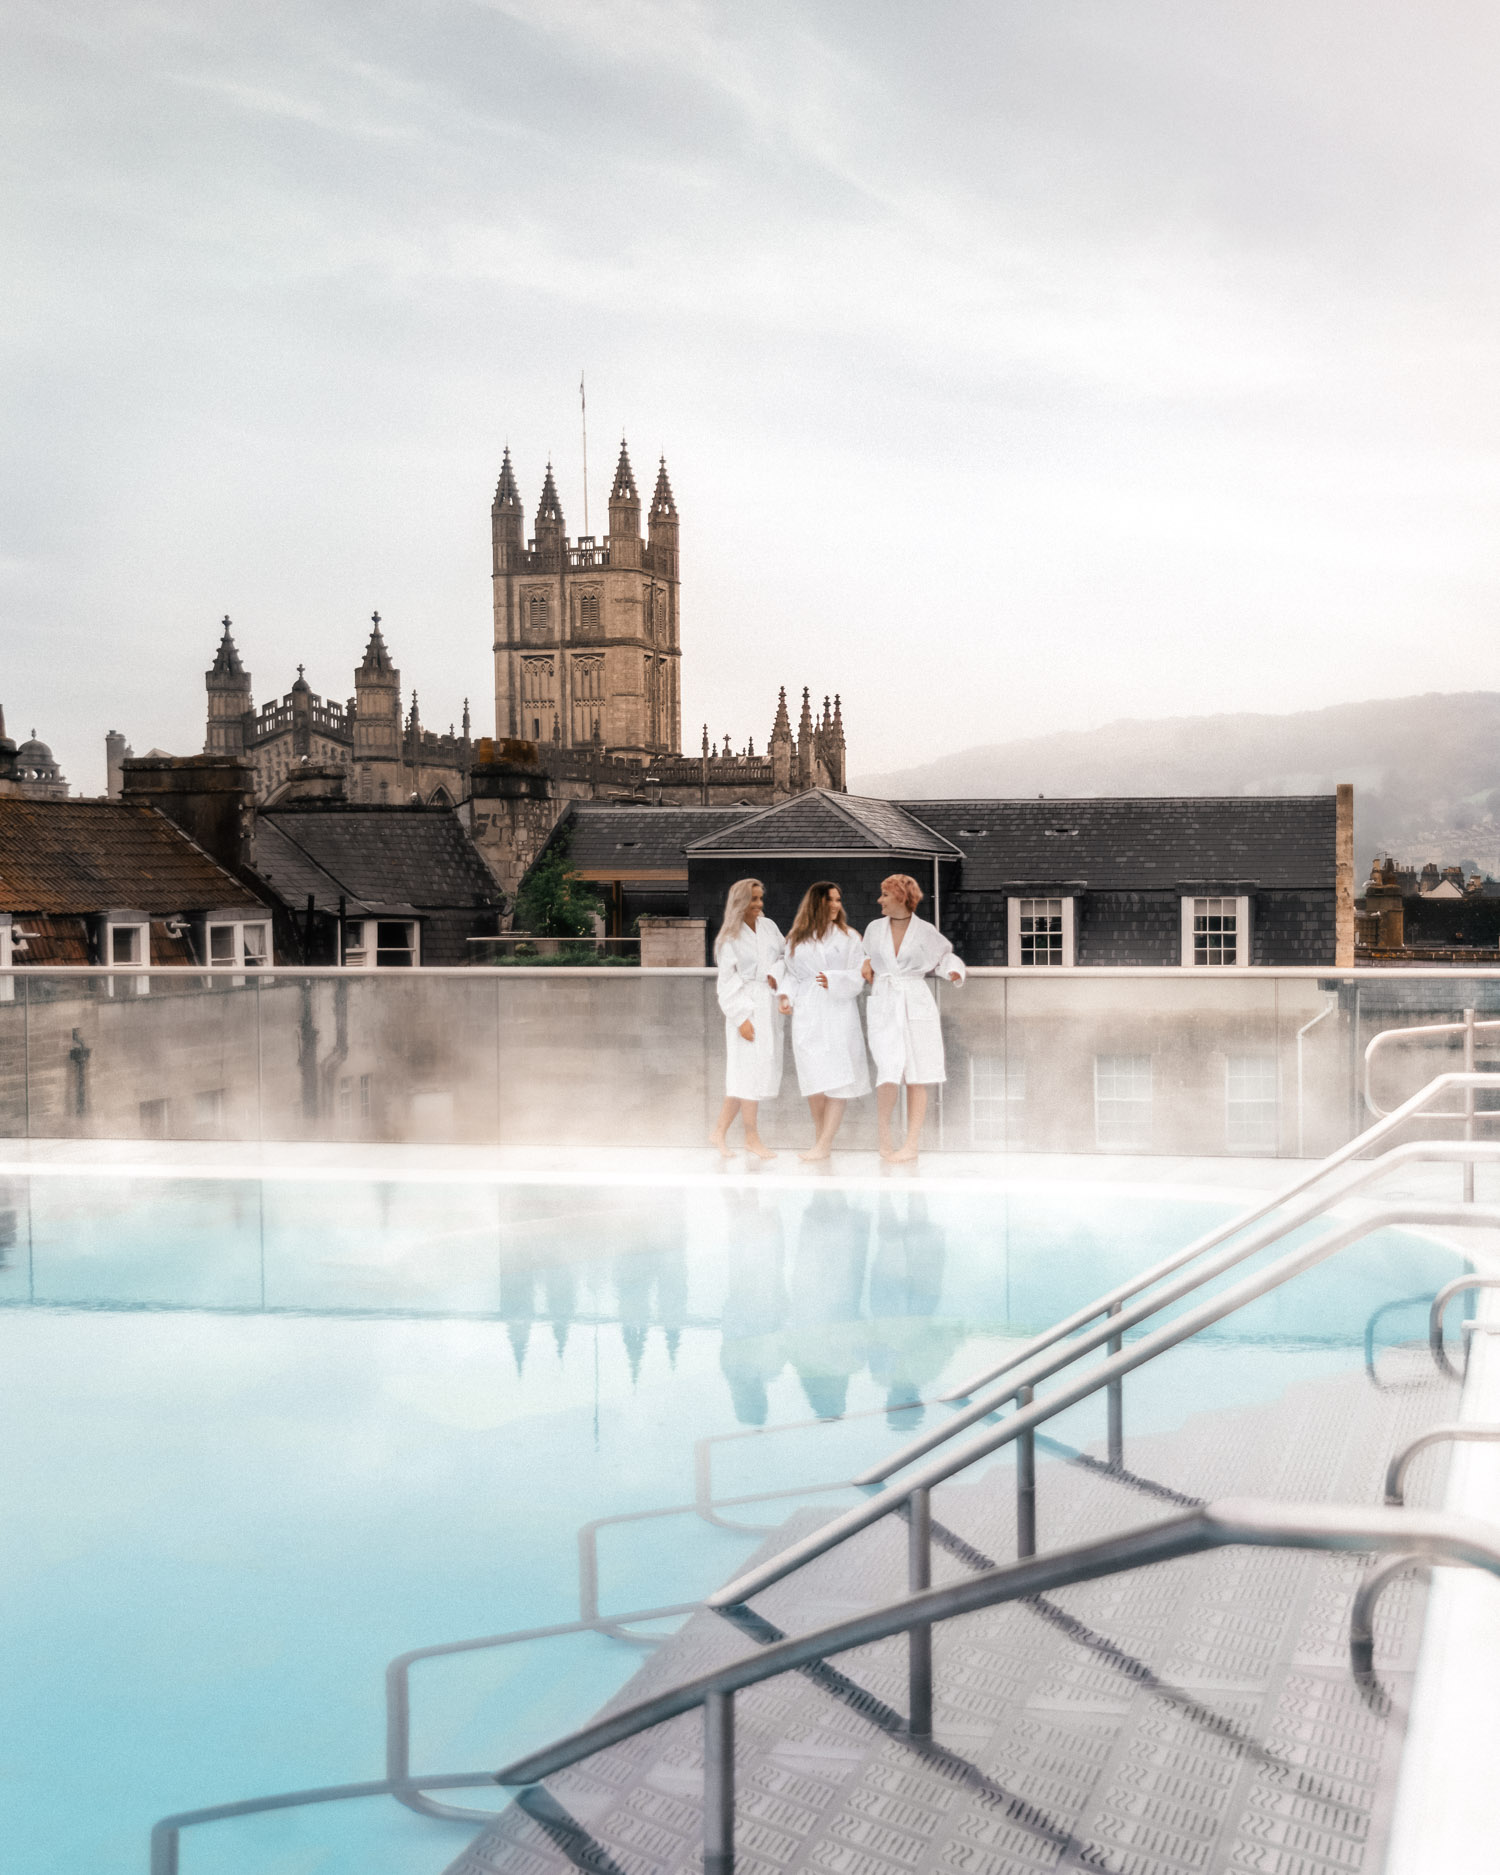 Thermae Bath Spa i Bath, England